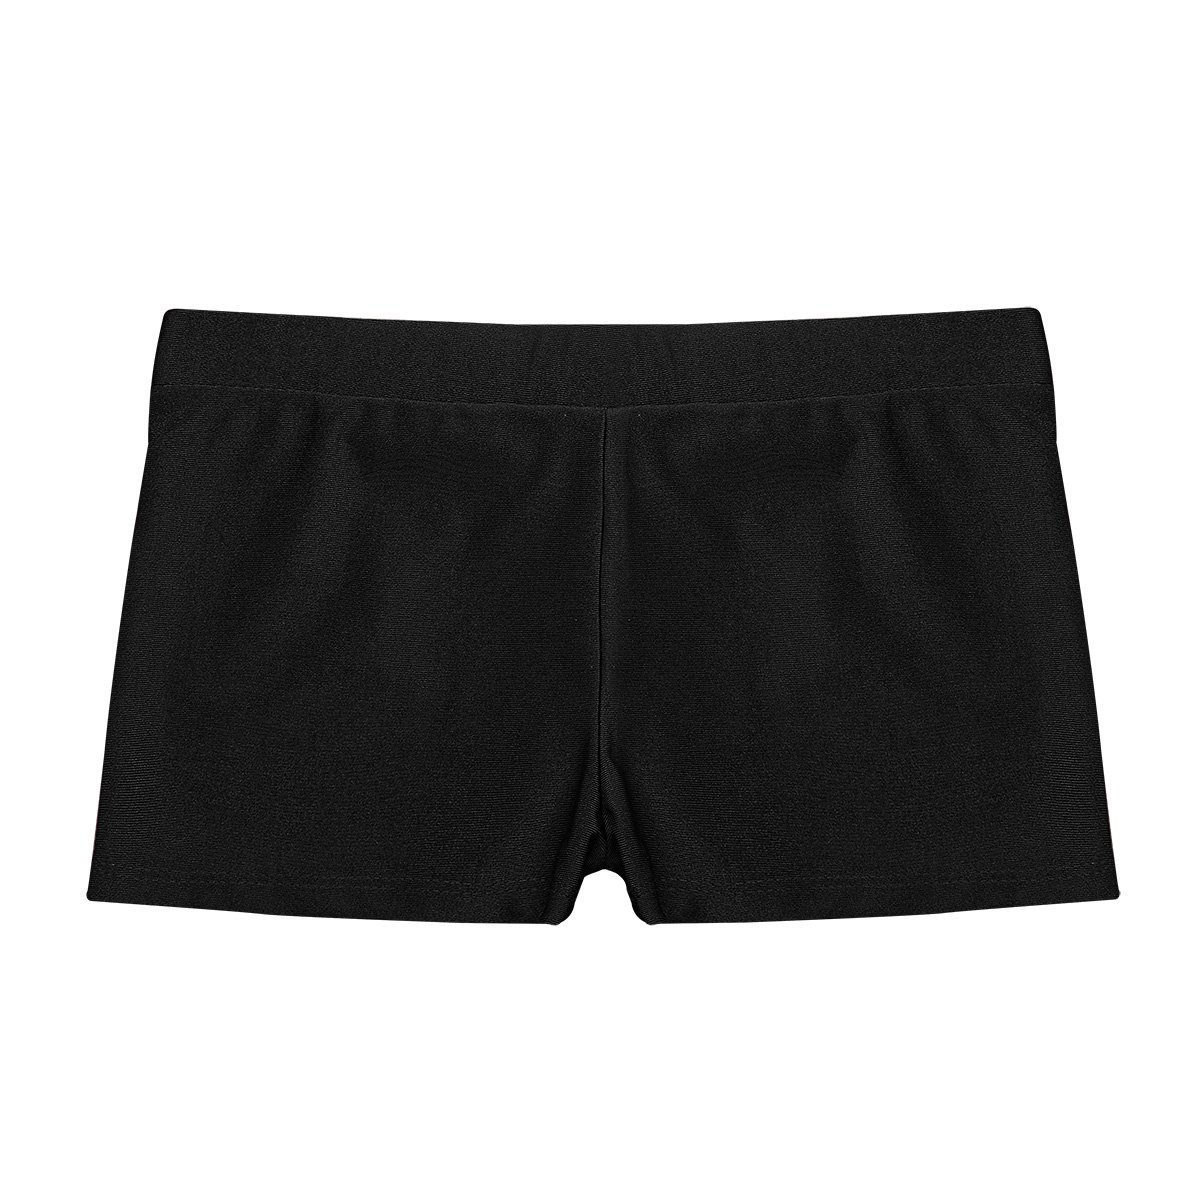 0a3aaef1fe9 iEFiEL Kids Girls Ballet Dance Booty Shorts Sports Gym Workout Yoga Cycling  Running Activewear Shorts